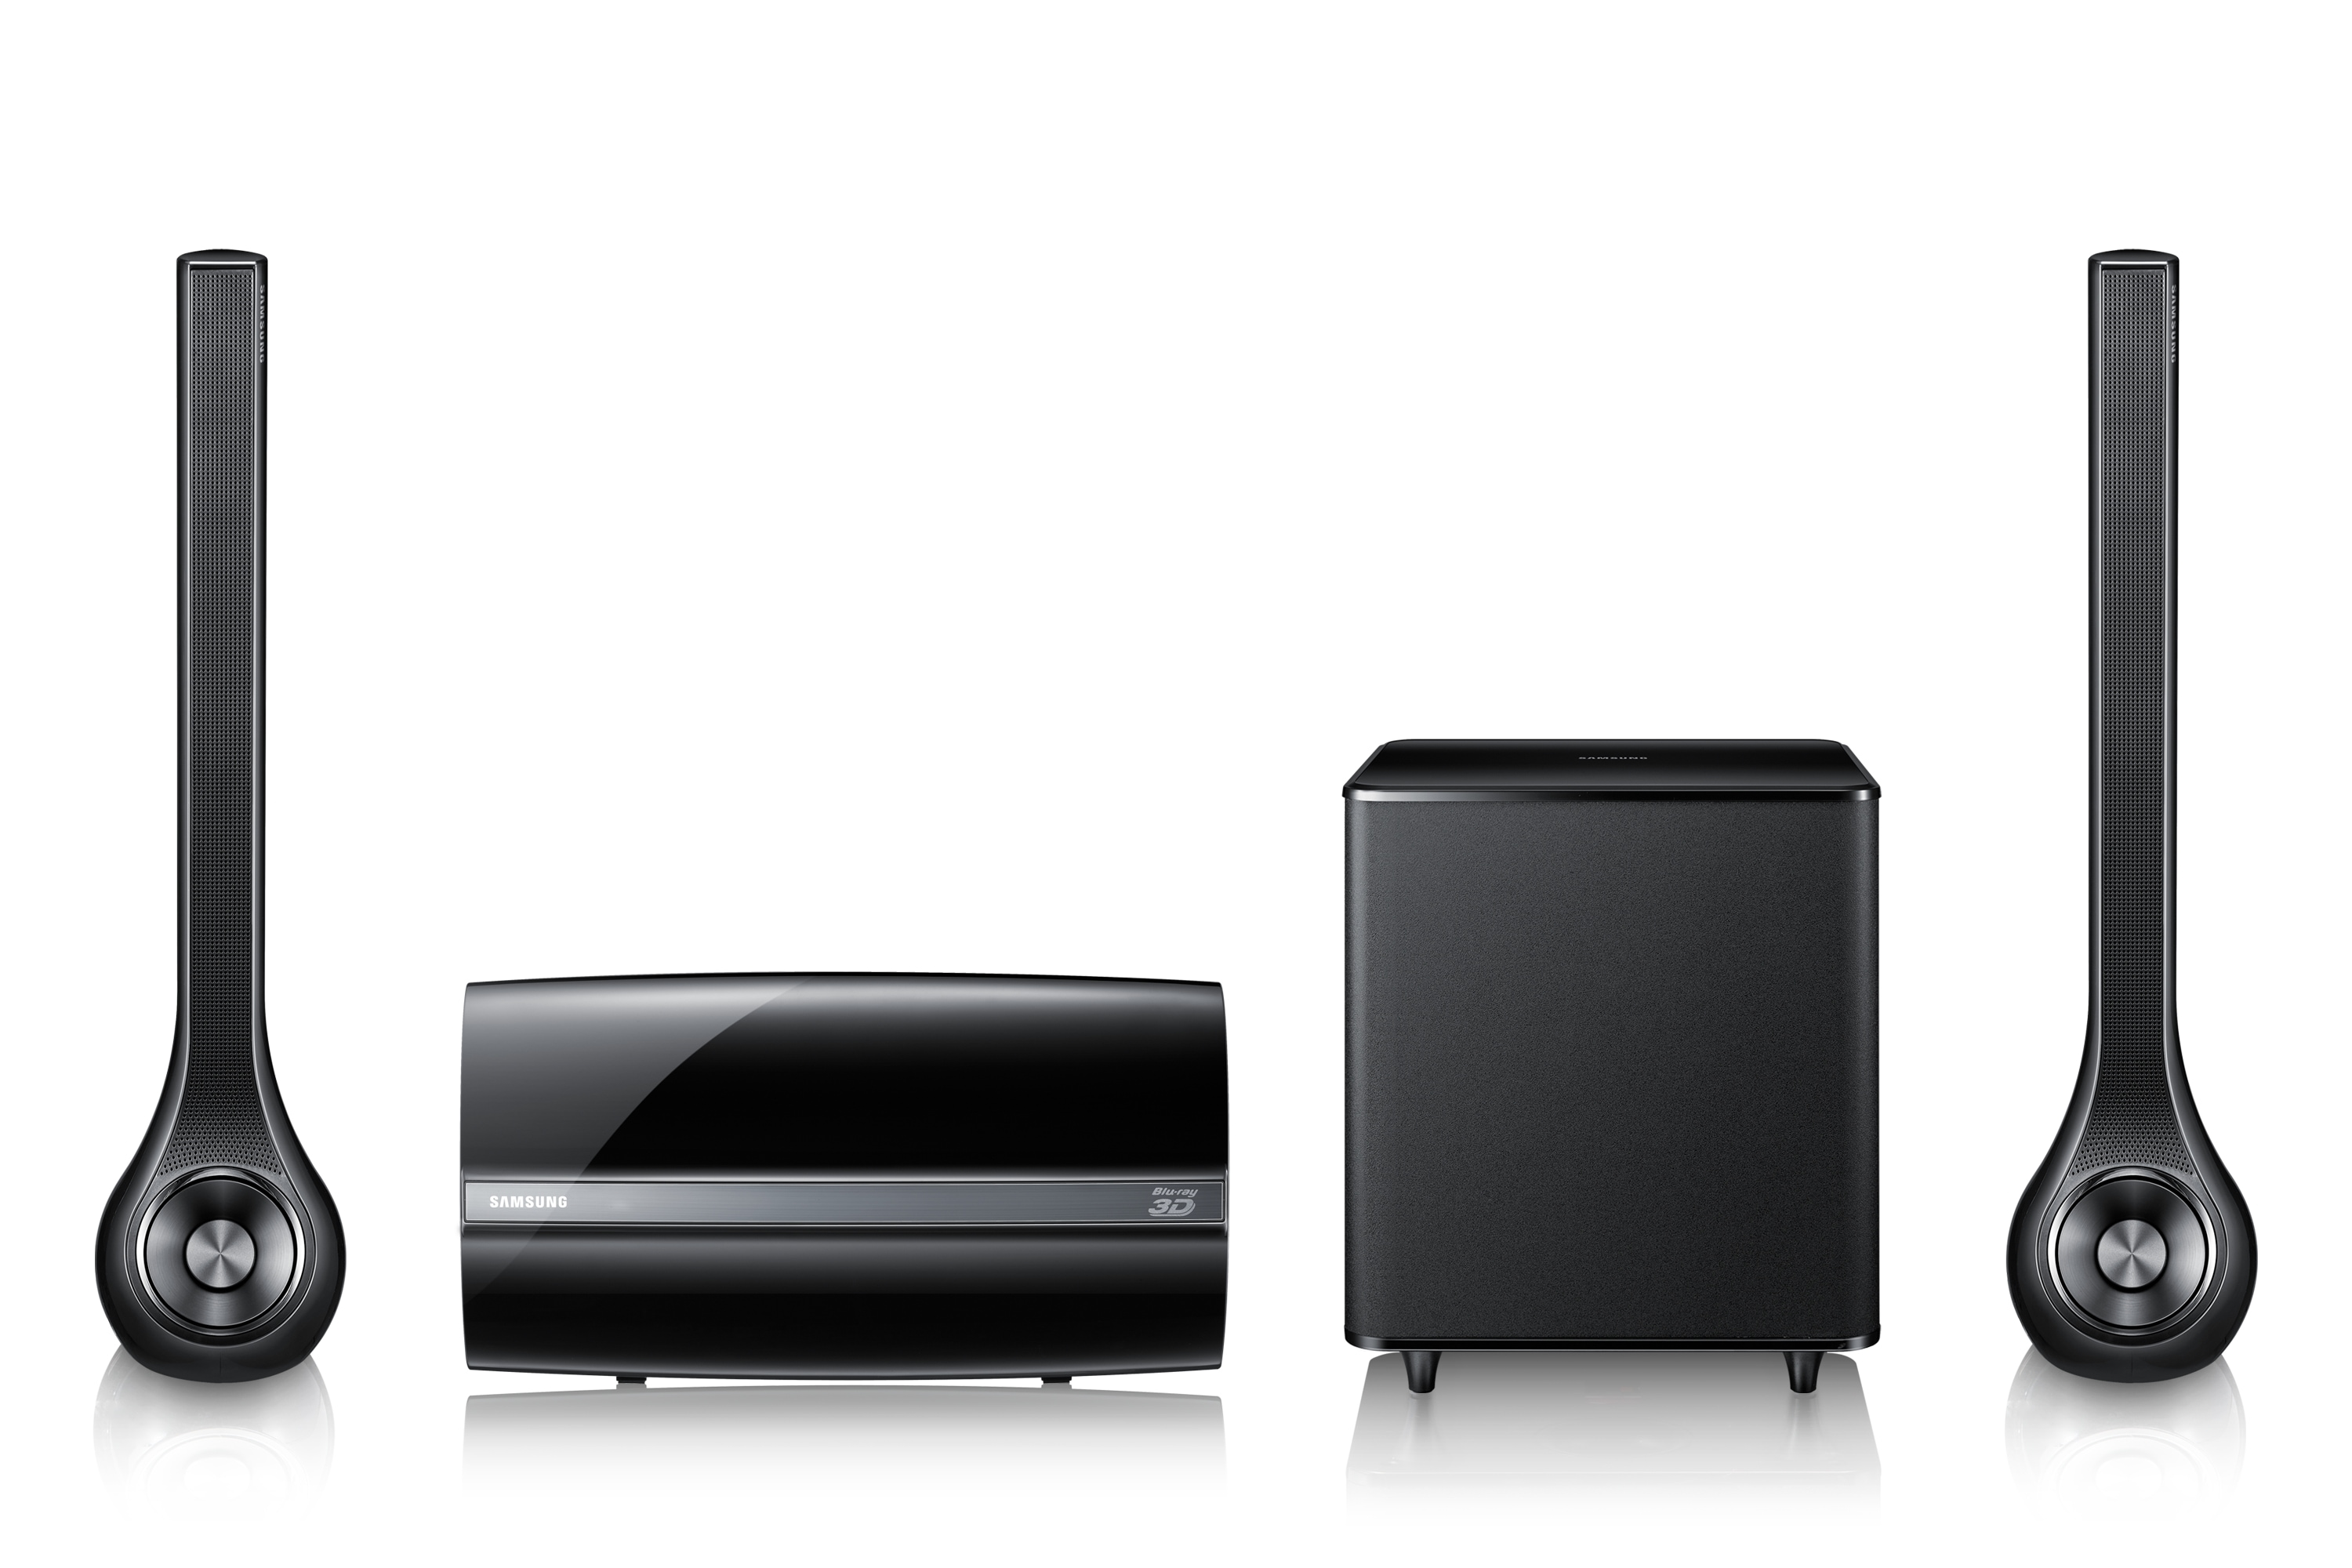 Blu-ray Home Entertainment System HT-ES6200